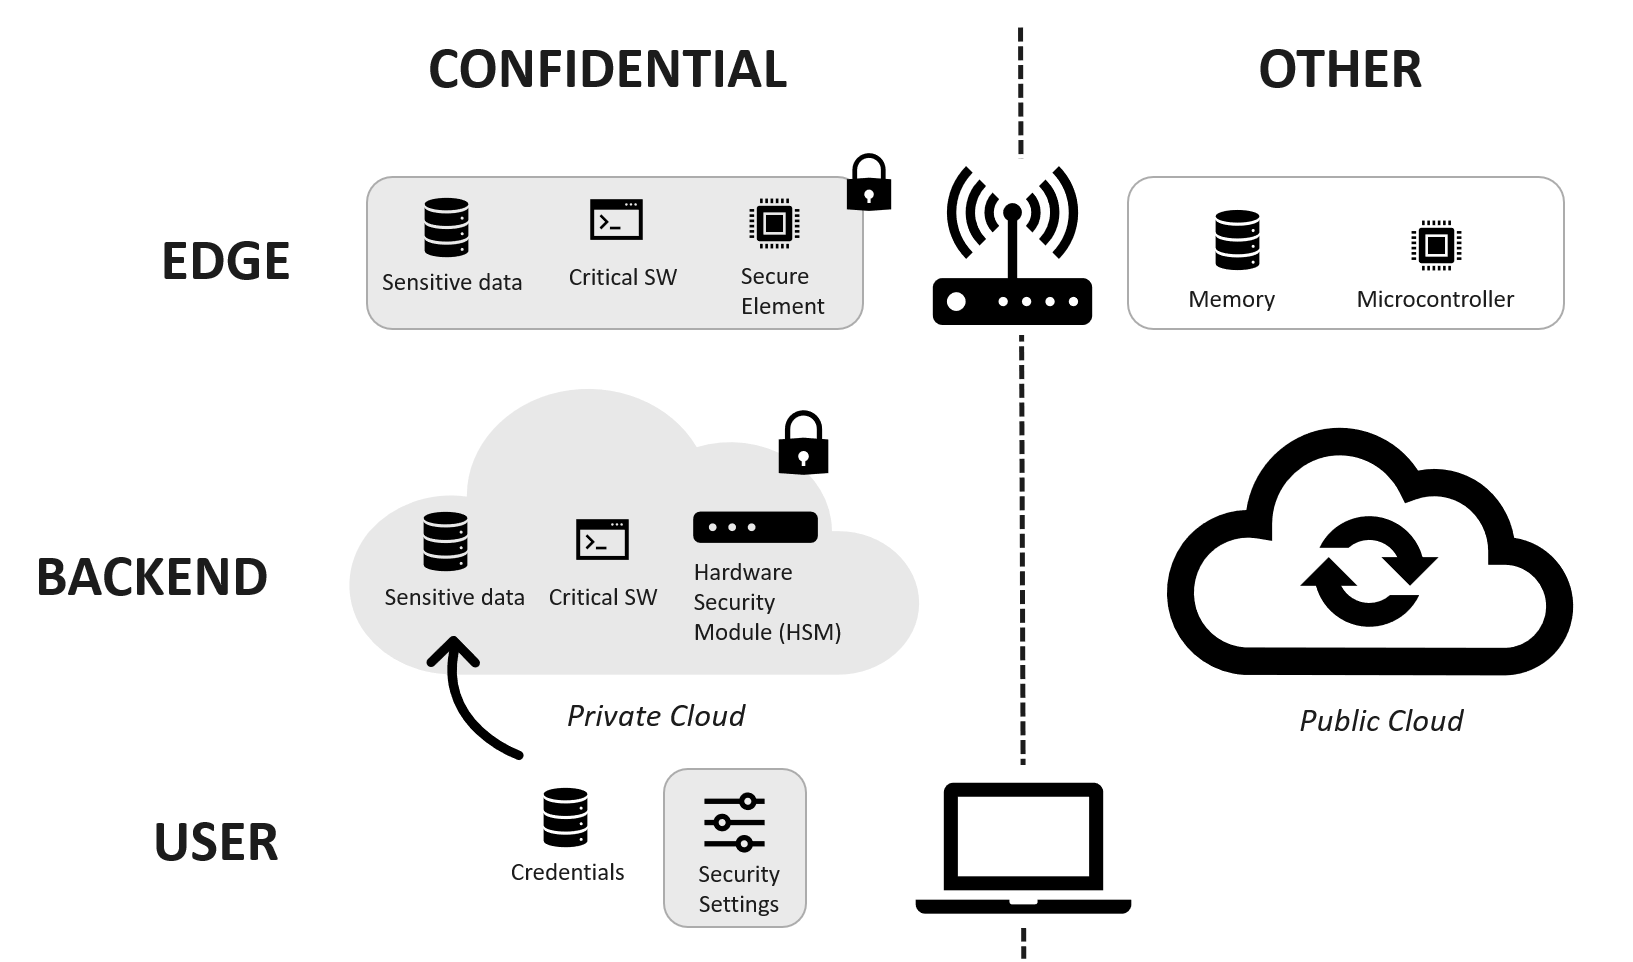 confidential edge computing approach